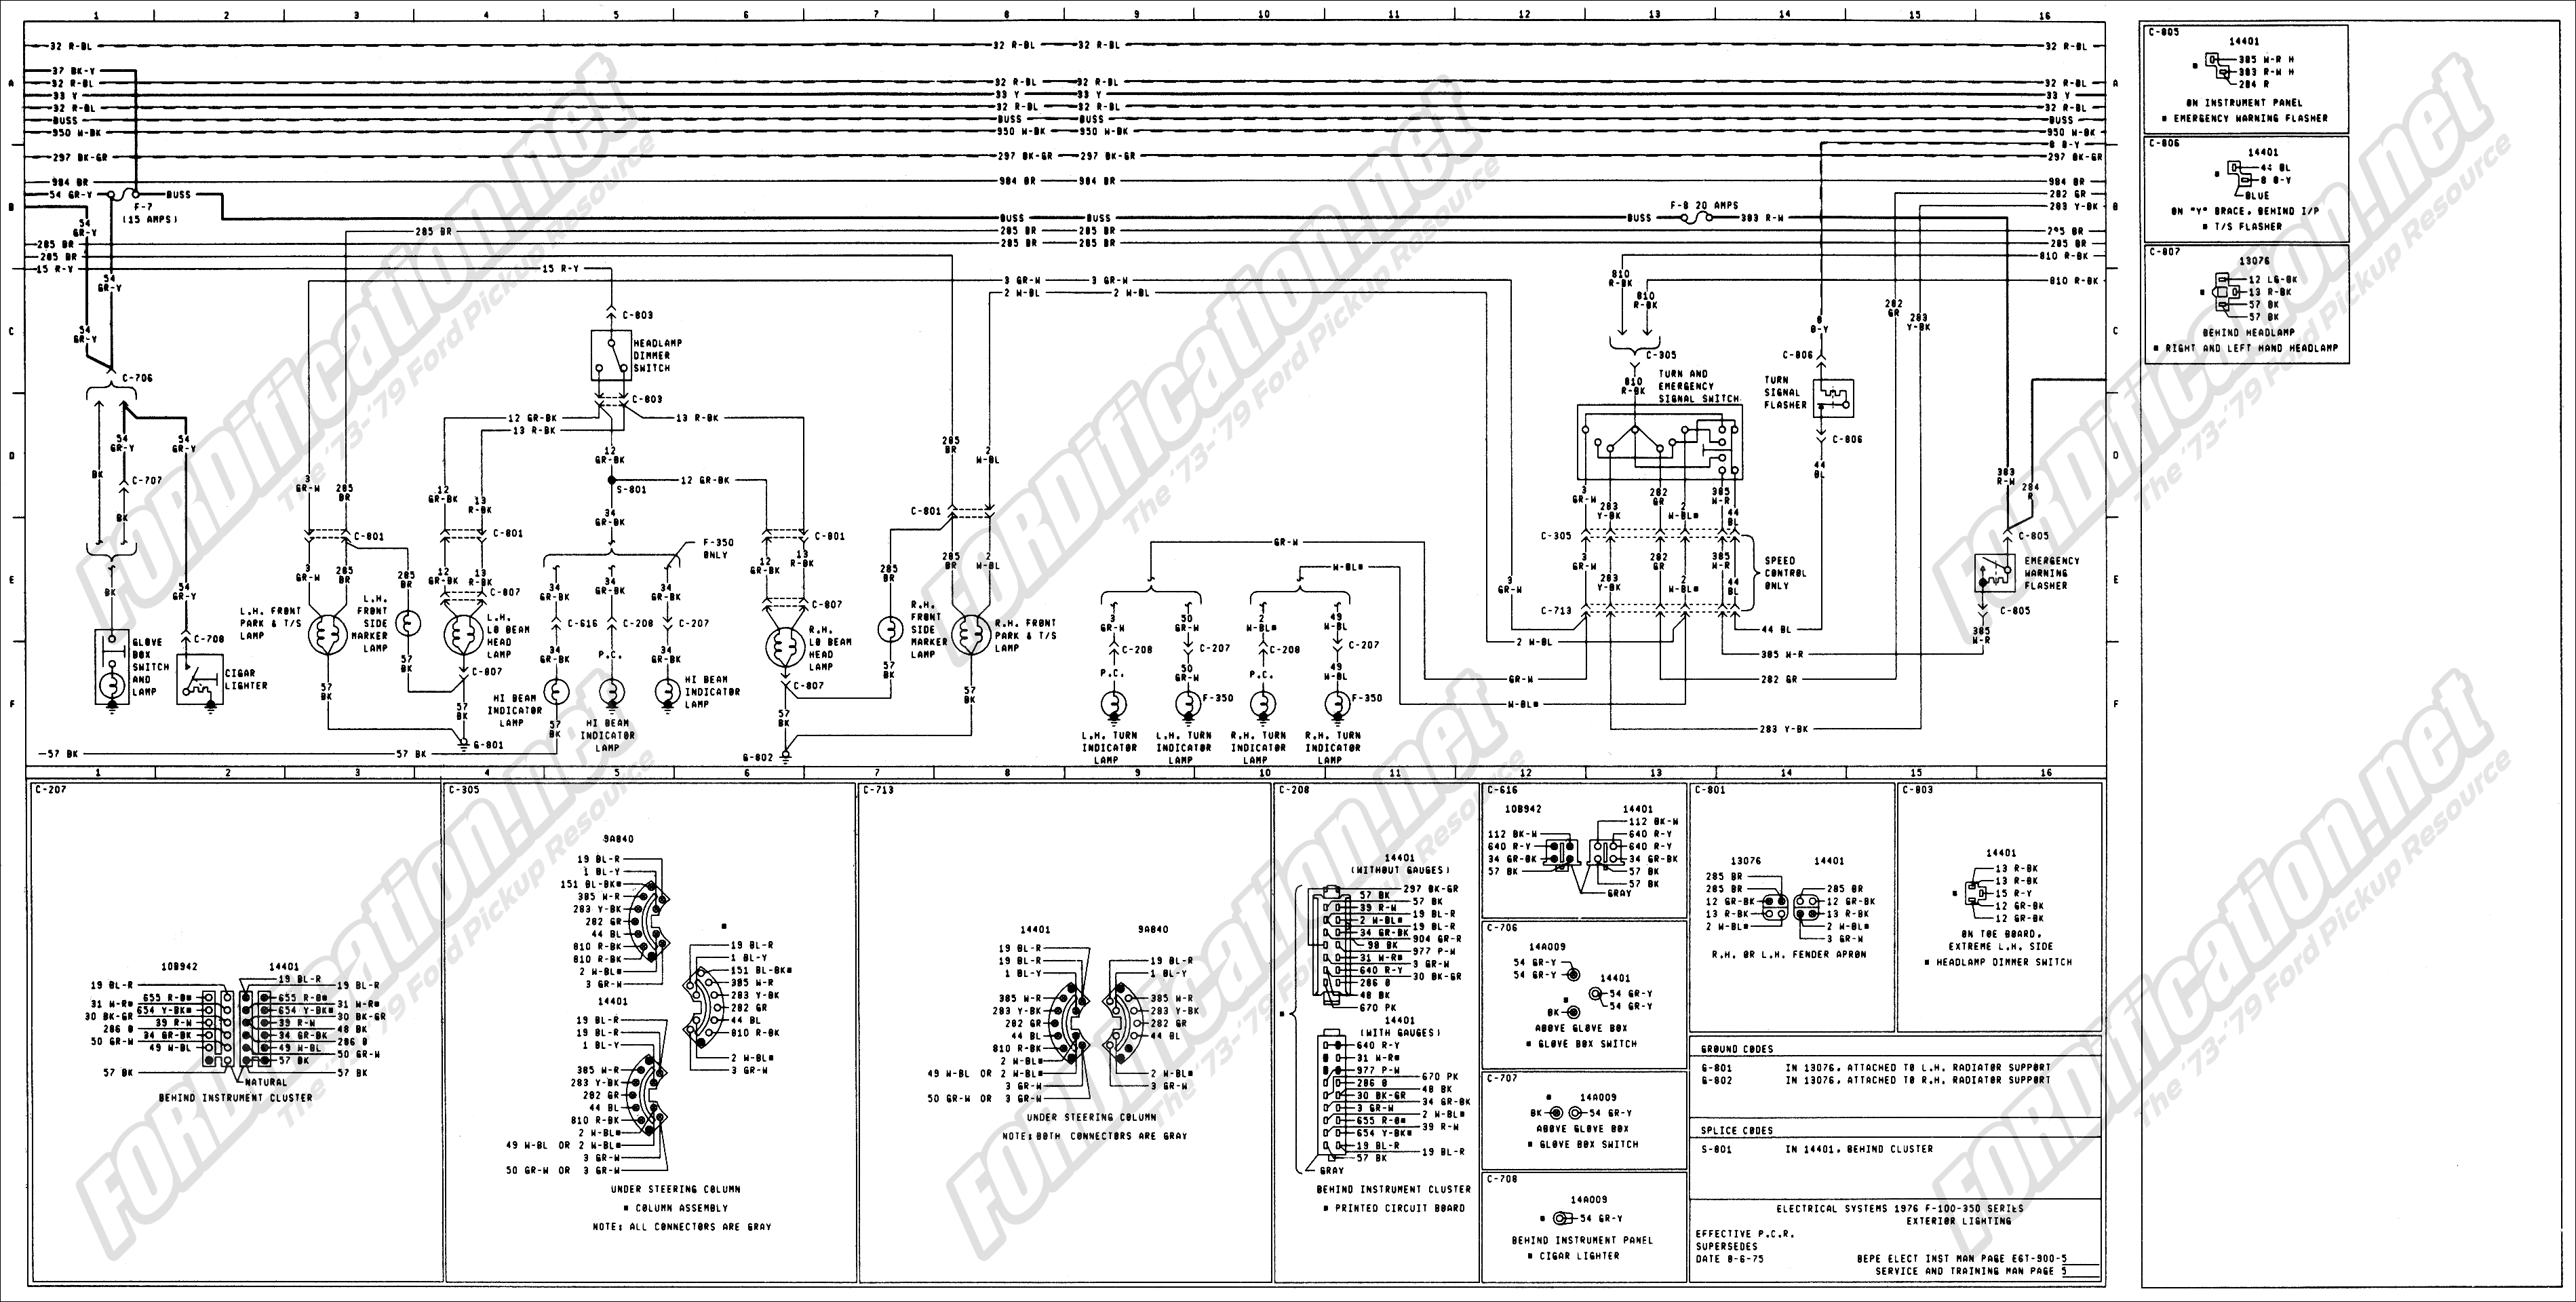 wiring_76master_5of9 1983 ford f100 wiring diagram wiring diagram simonand 1979 ford f100 fuse box diagram at mifinder.co